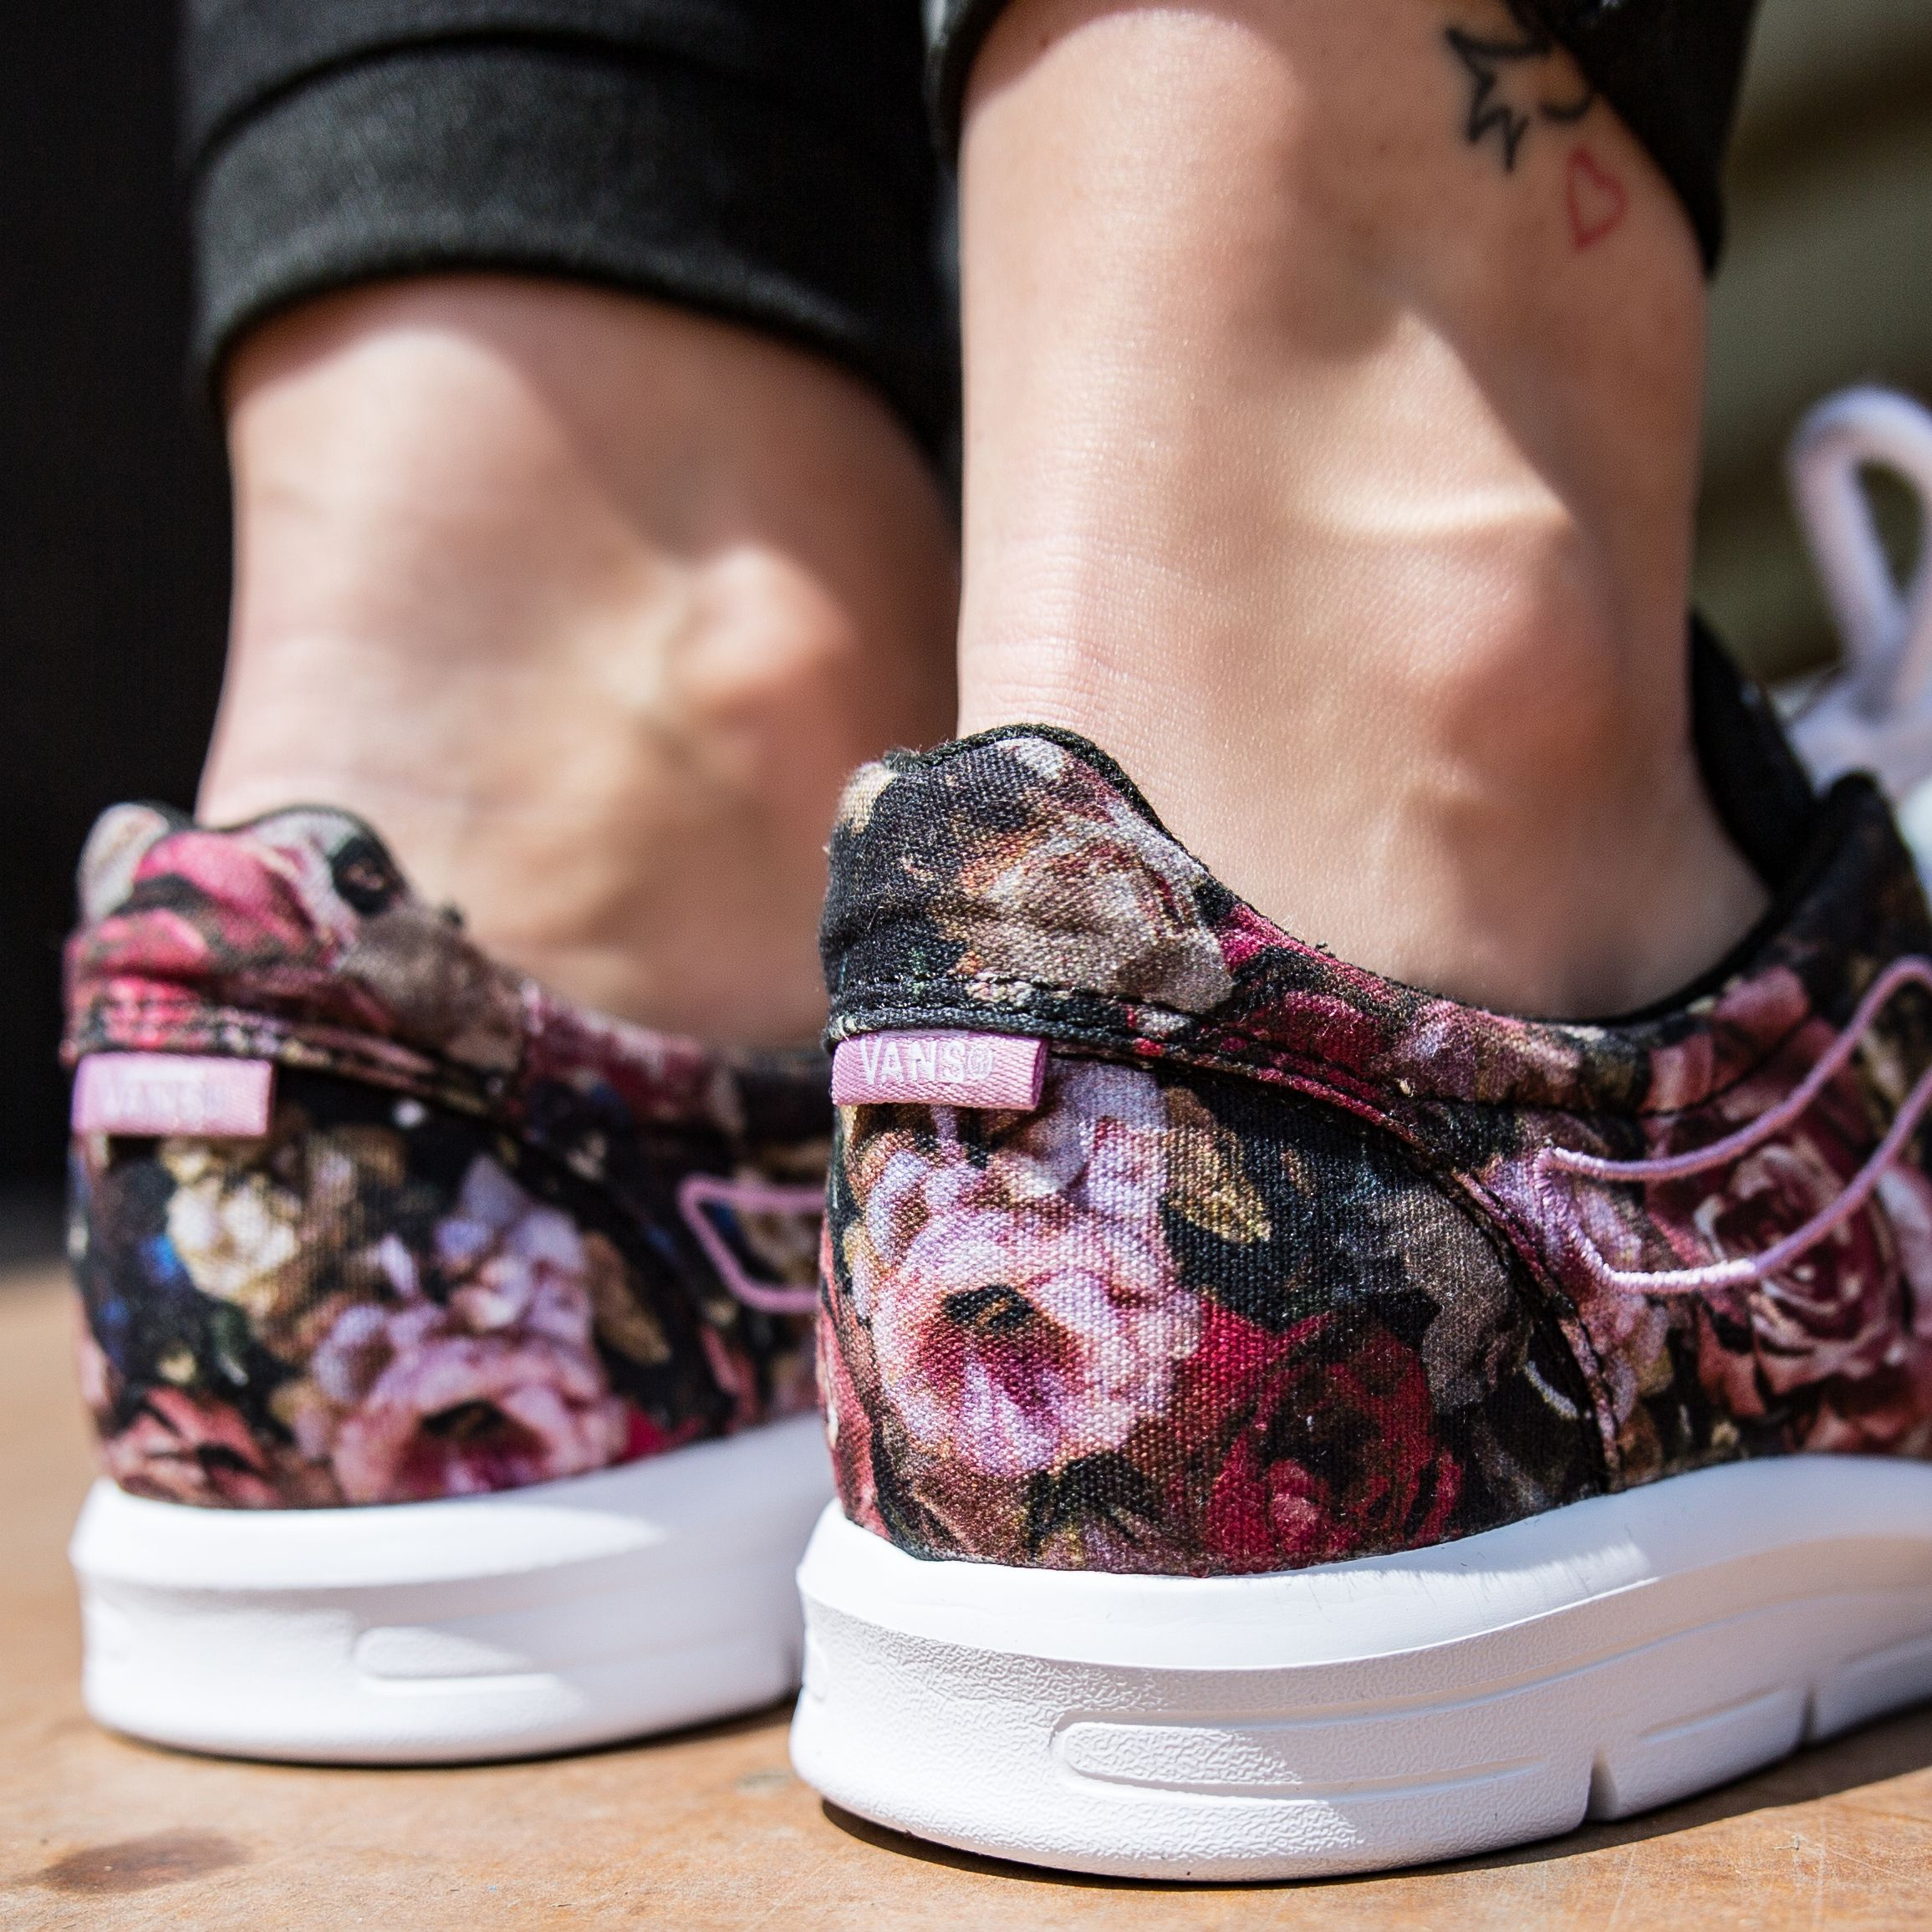 69318588e775be Vans Iso 1.5 (Moody Floral) Blk-TW